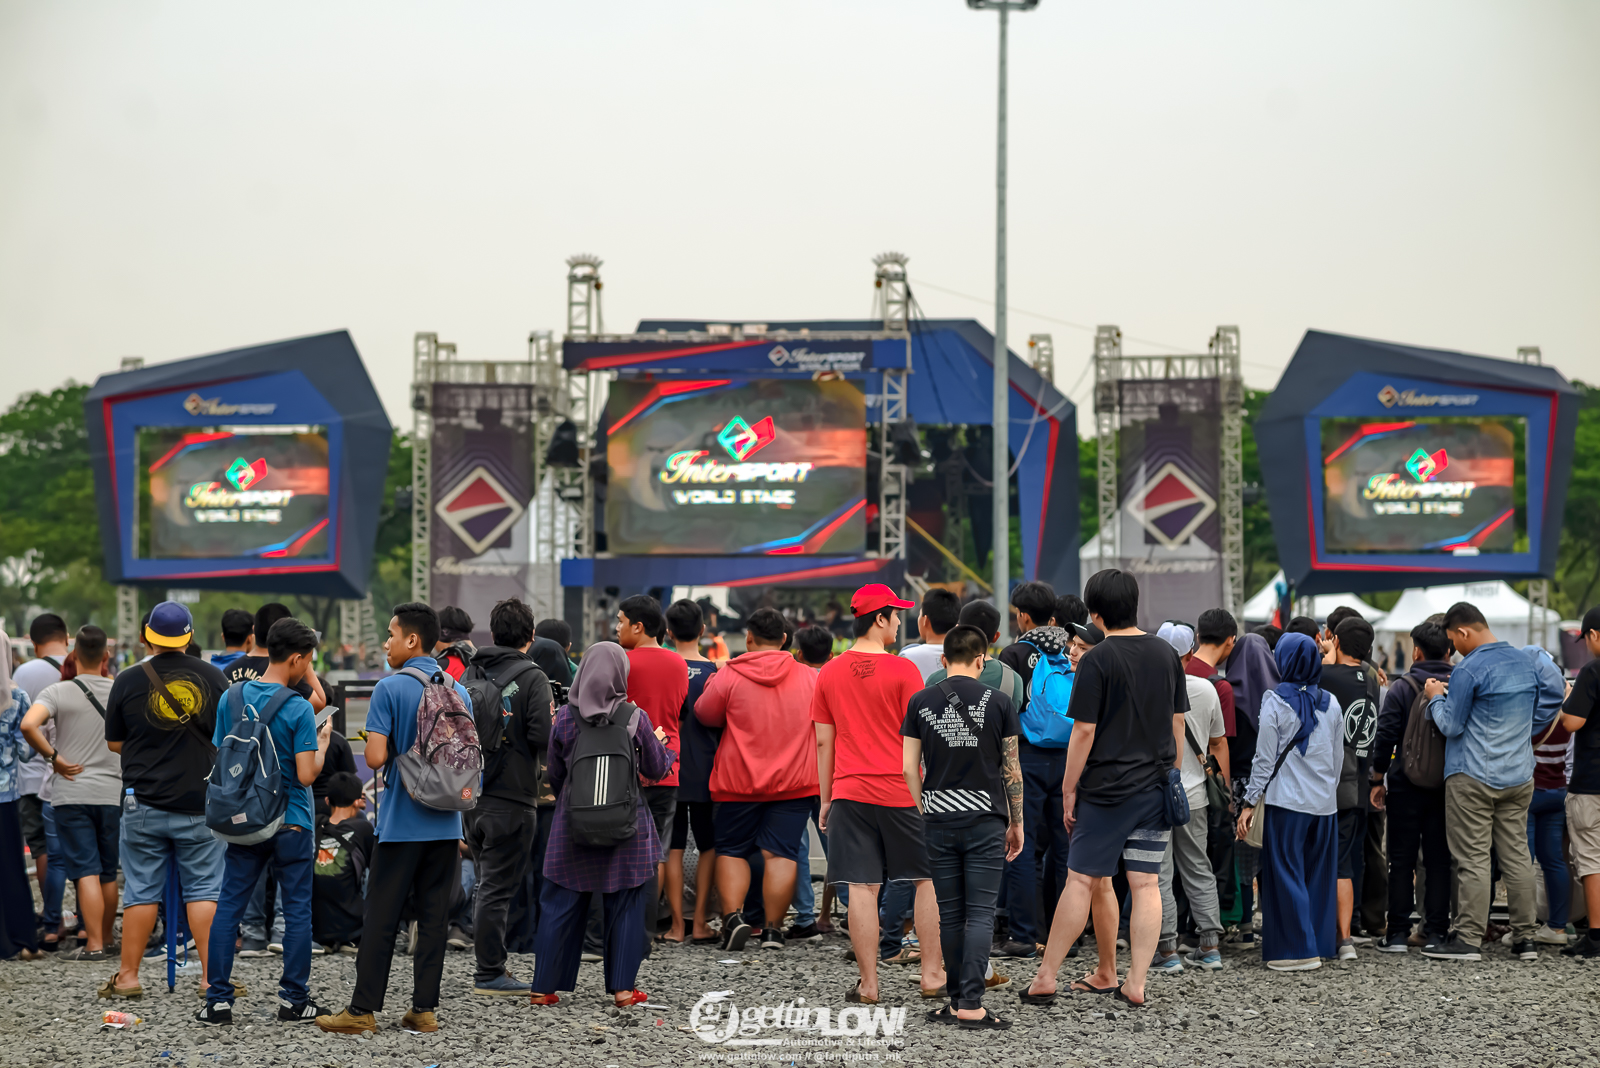 intersport world stage 2018